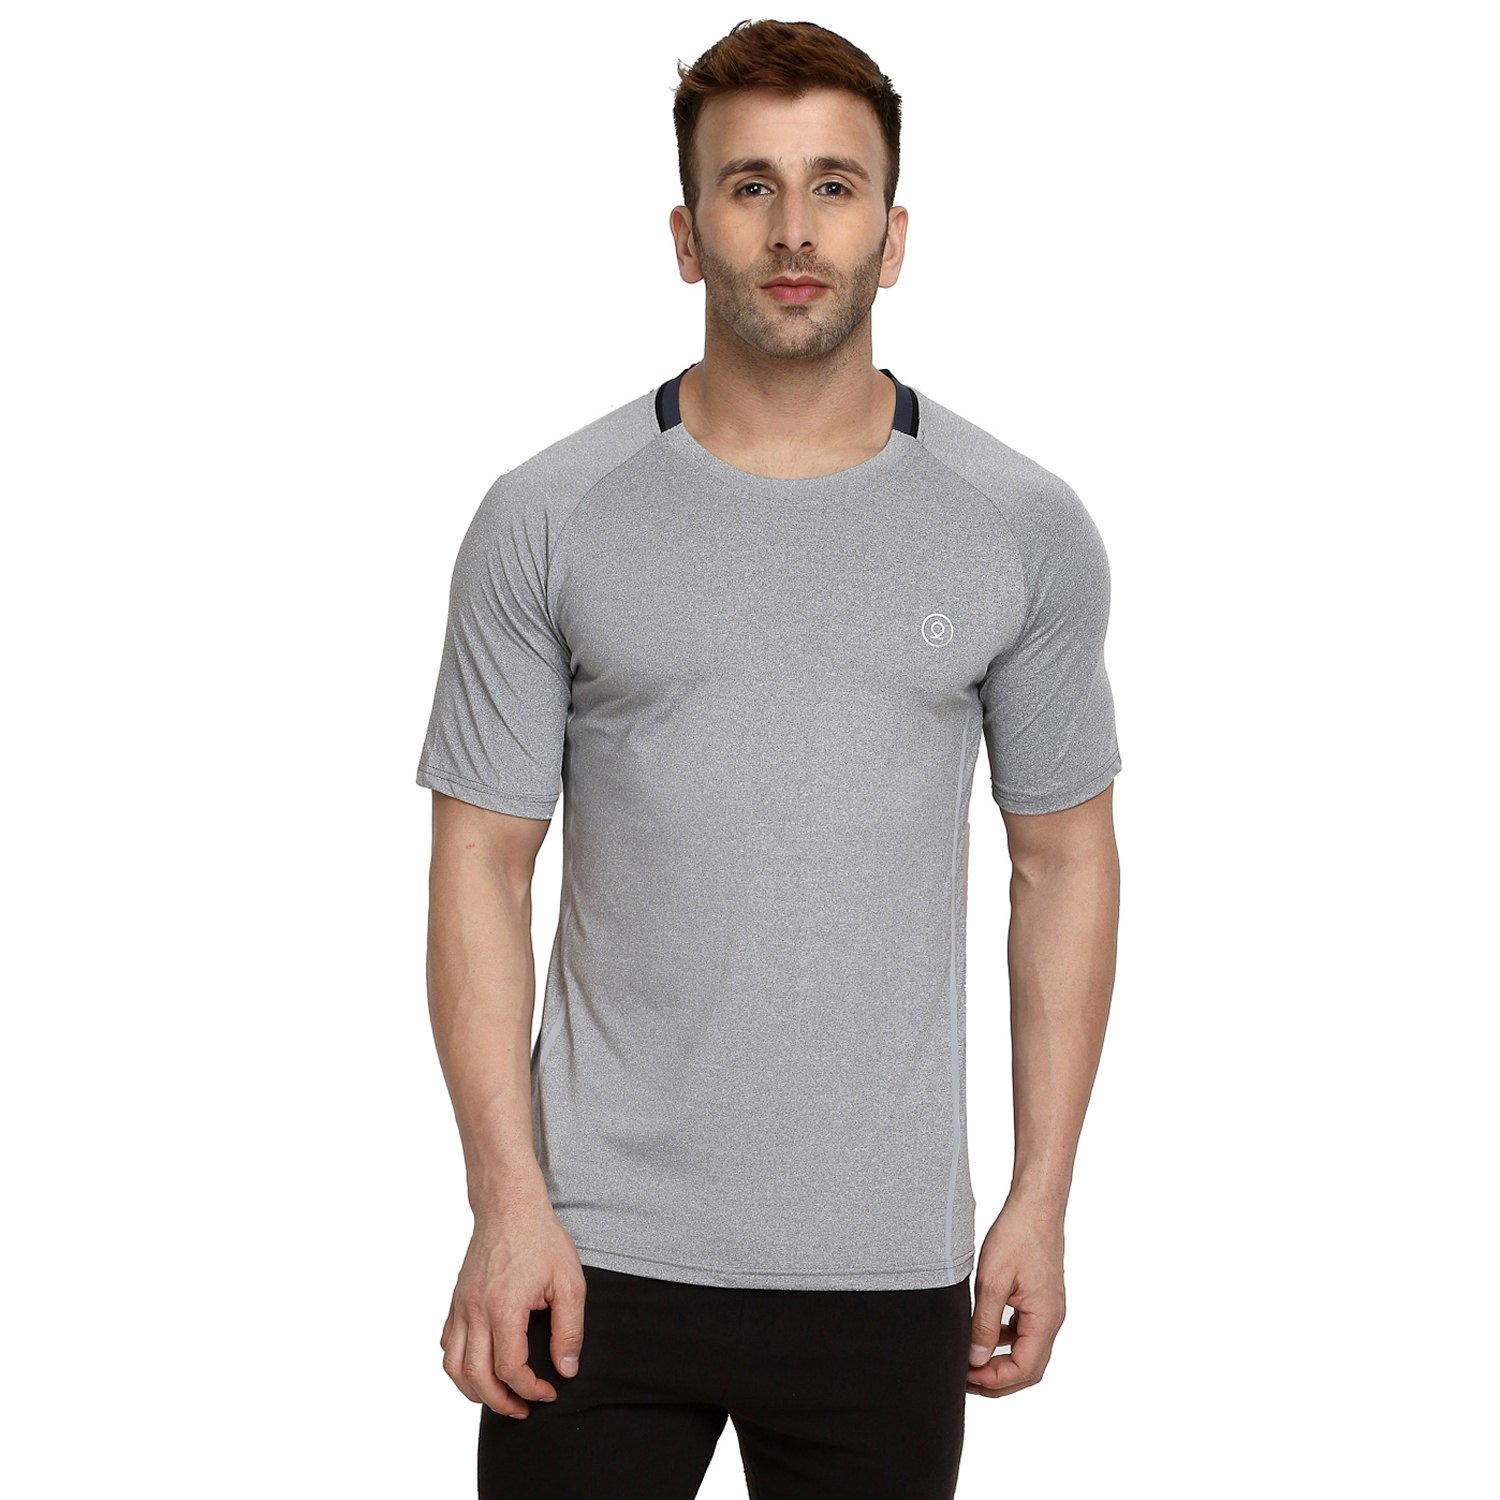 08bee7d69028 CHKOKKO Men's Polyester Round Neck Regular Dry Fit Stretchable Jersey Gym  Sports T-shirt (Light Grey, Medium): Amazon.in: Clothing & Accessories